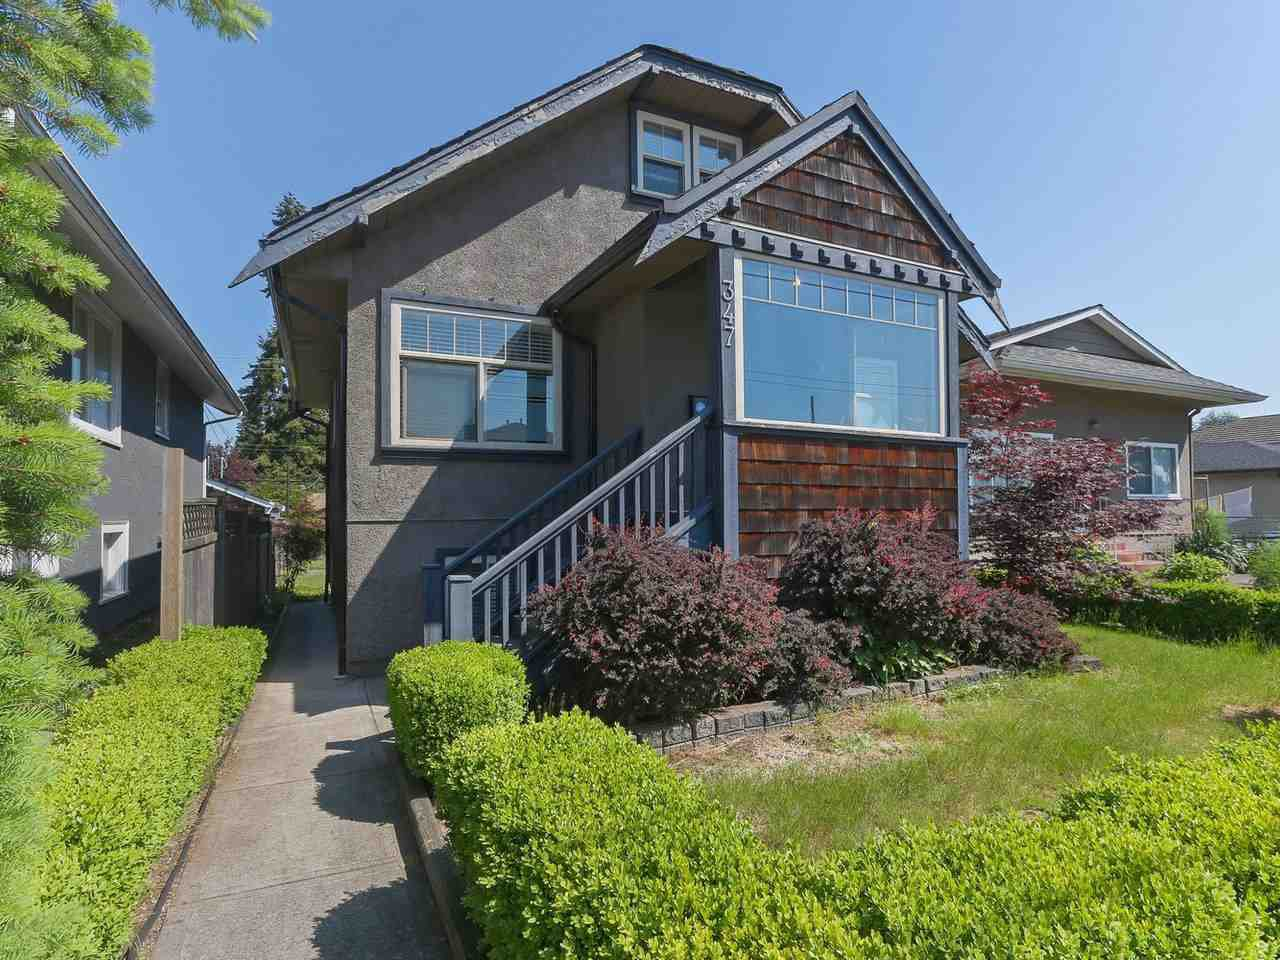 Main Photo: 347 E 41ST Avenue in Vancouver: Main House for sale (Vancouver East)  : MLS®# R2410368